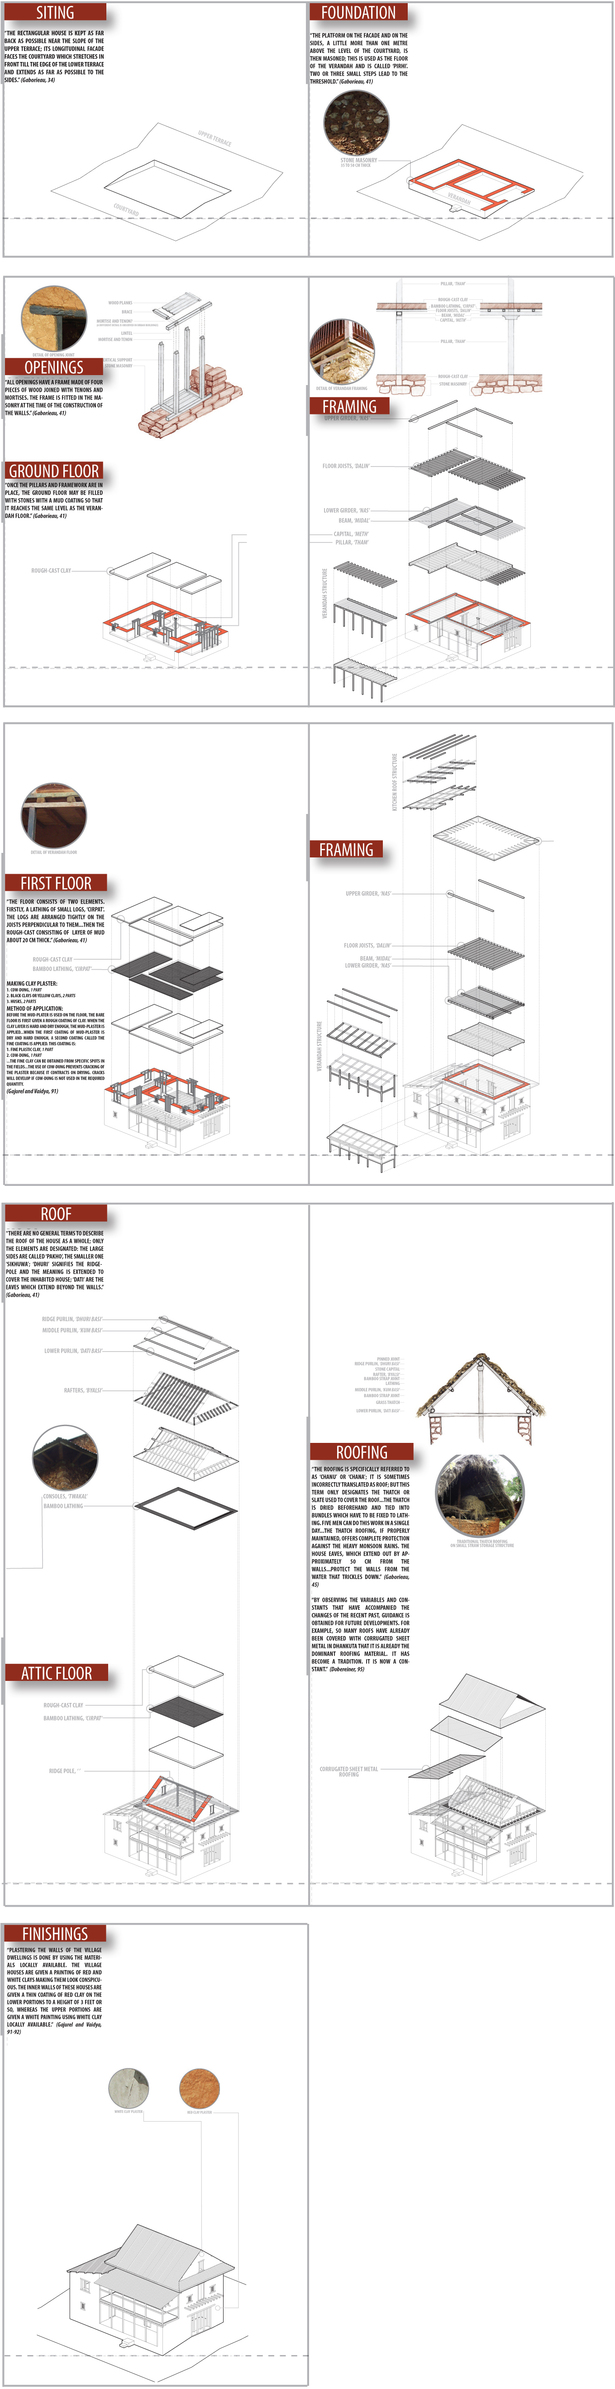 construction sequence of a rural Nepali house (Rhino 3D, Adobe Illustrator)